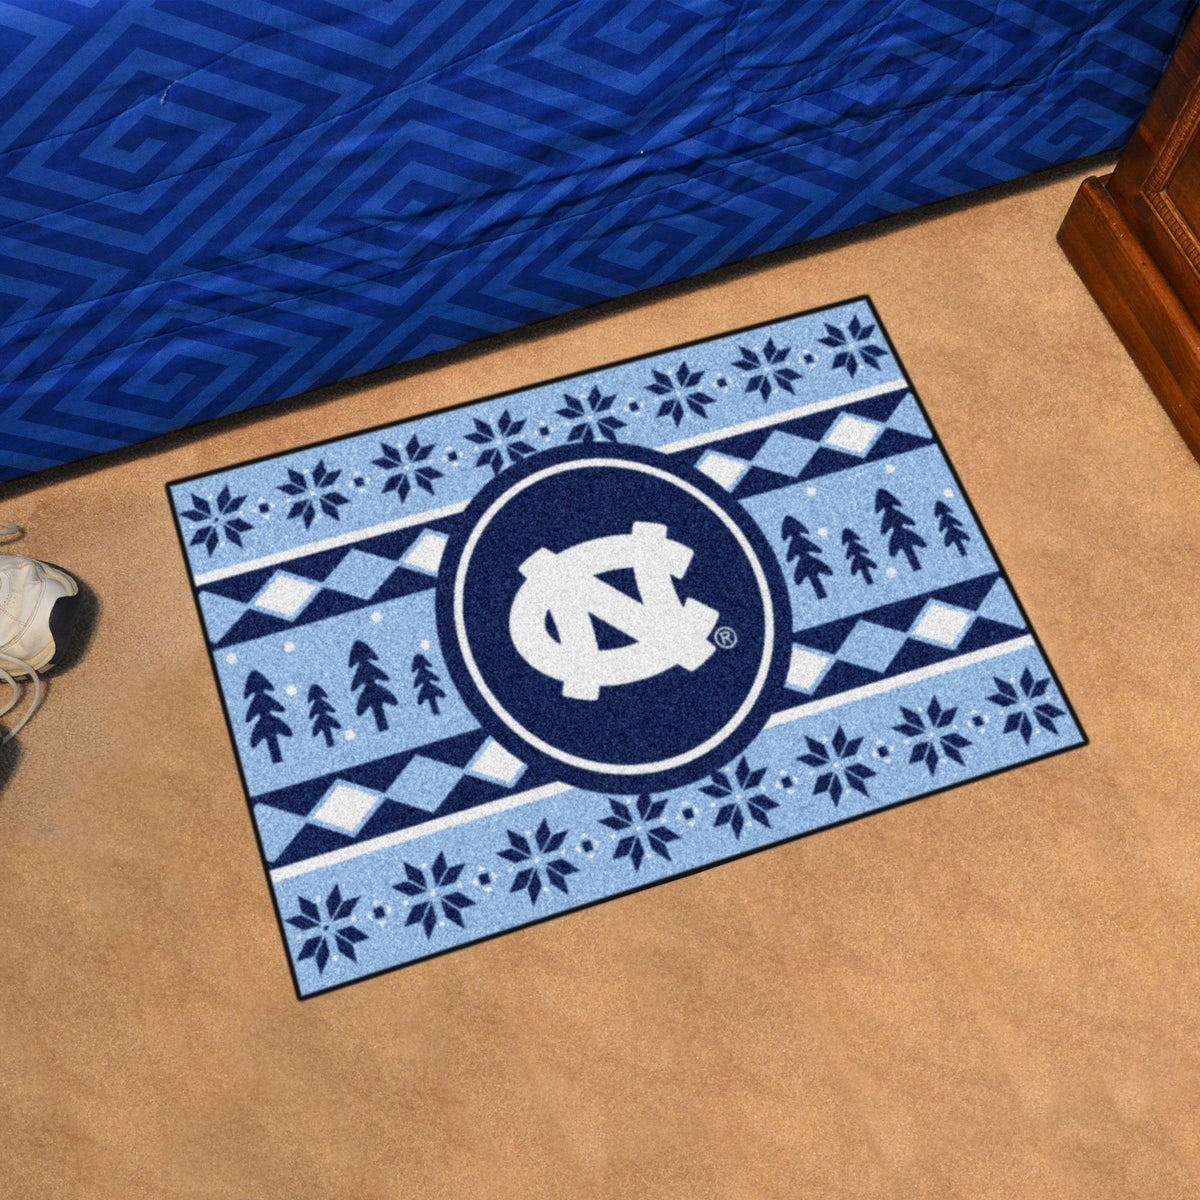 Collegiate - Holiday Sweater Starter Mat Collegiate Mats, Rectangular Mats, Holiday Sweater Starter Mat, Collegiate, Home Fan Mats North Carolina